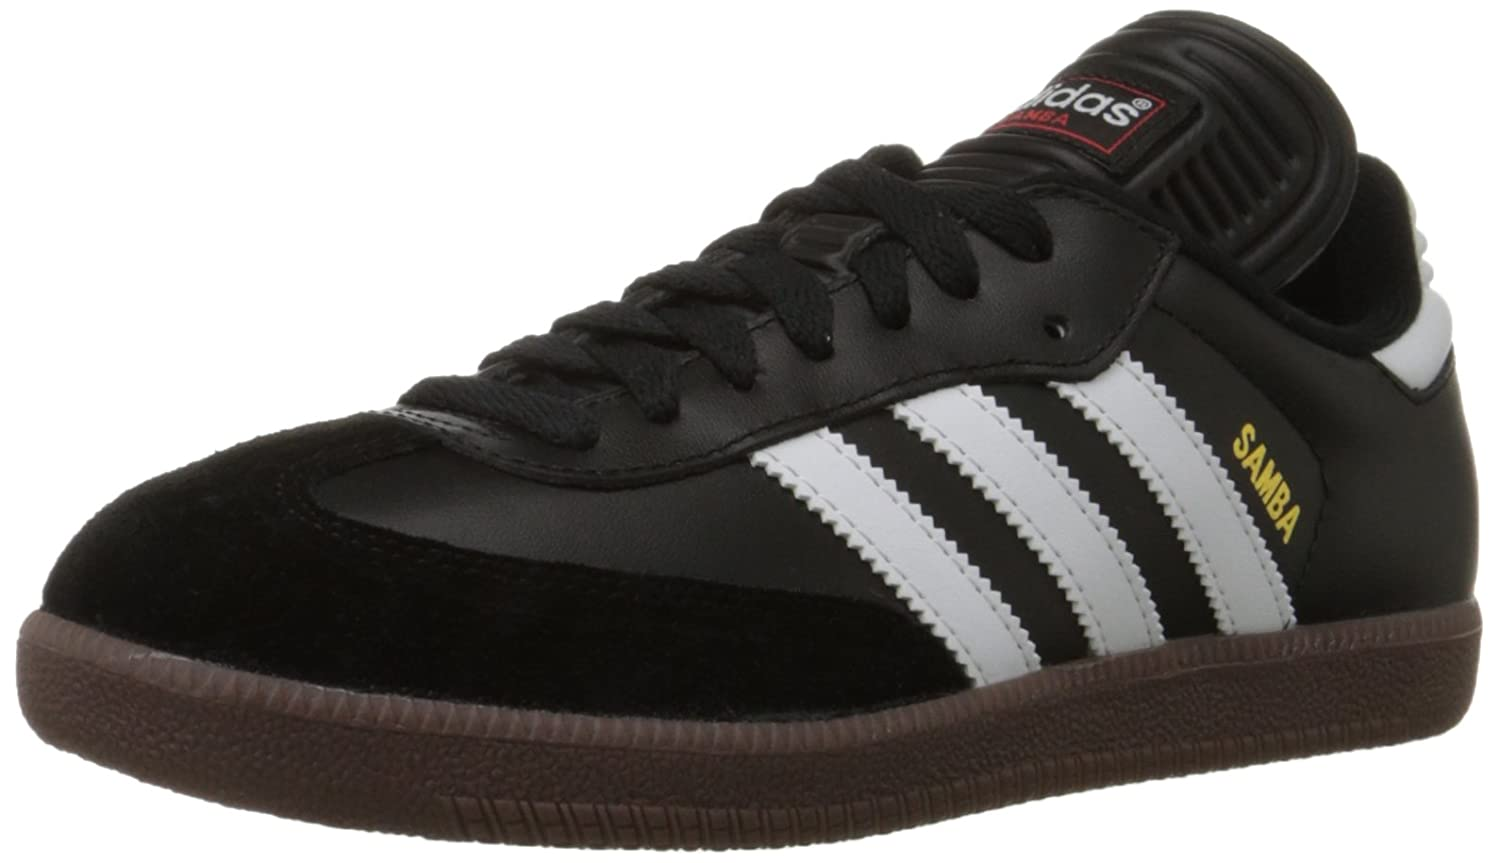 huge discount 98515 b470d Amazon.com  adidas Performance Mens Samba Classic Indoor Soccer Shoe   Running